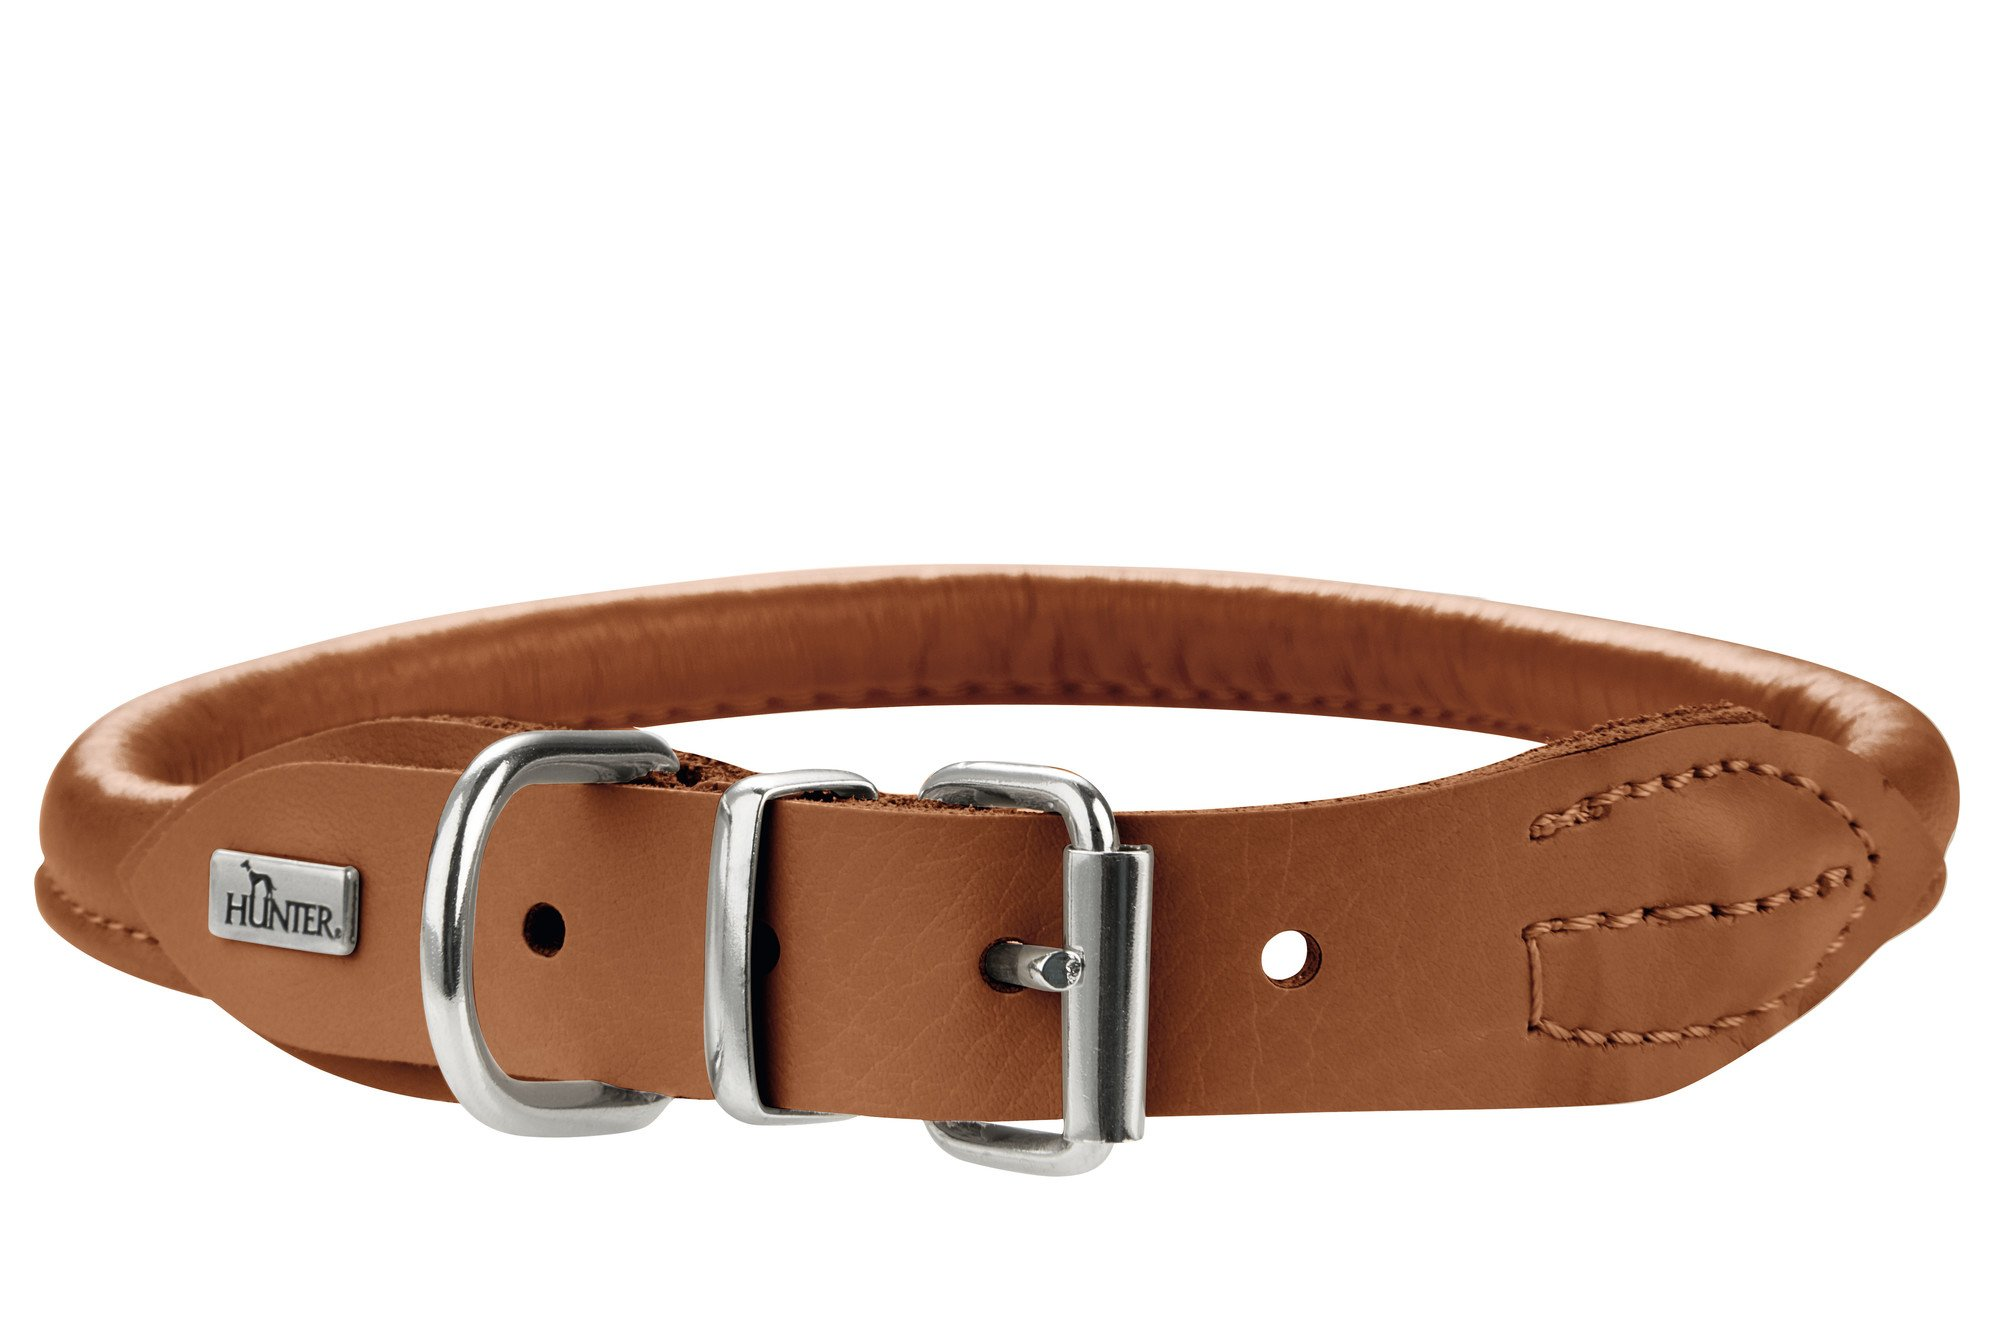 Collar para perro Hunter, redondo y suave, alce, talla 38-42 cm, coñac by Hunter